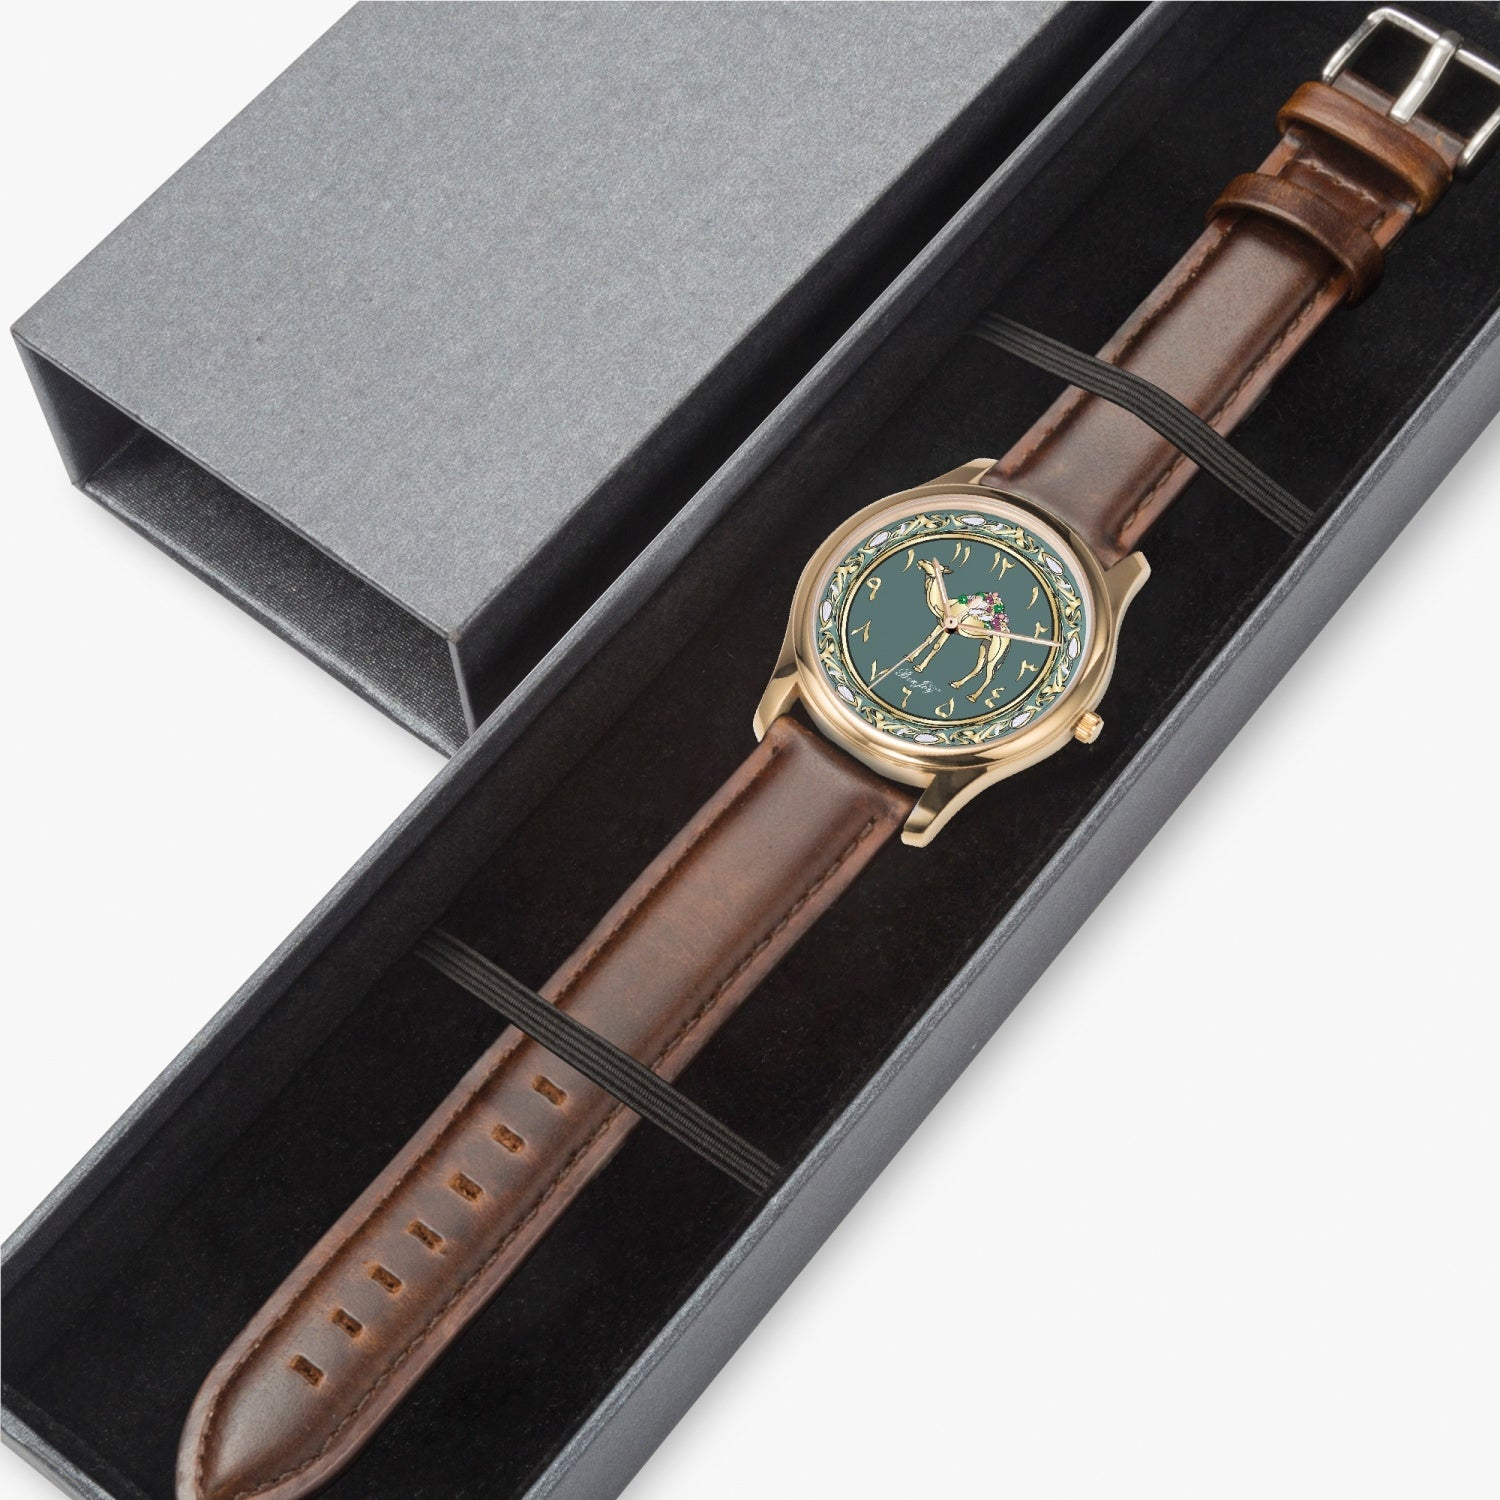 Arabic Camel Leather Strap Watch By BenJoy